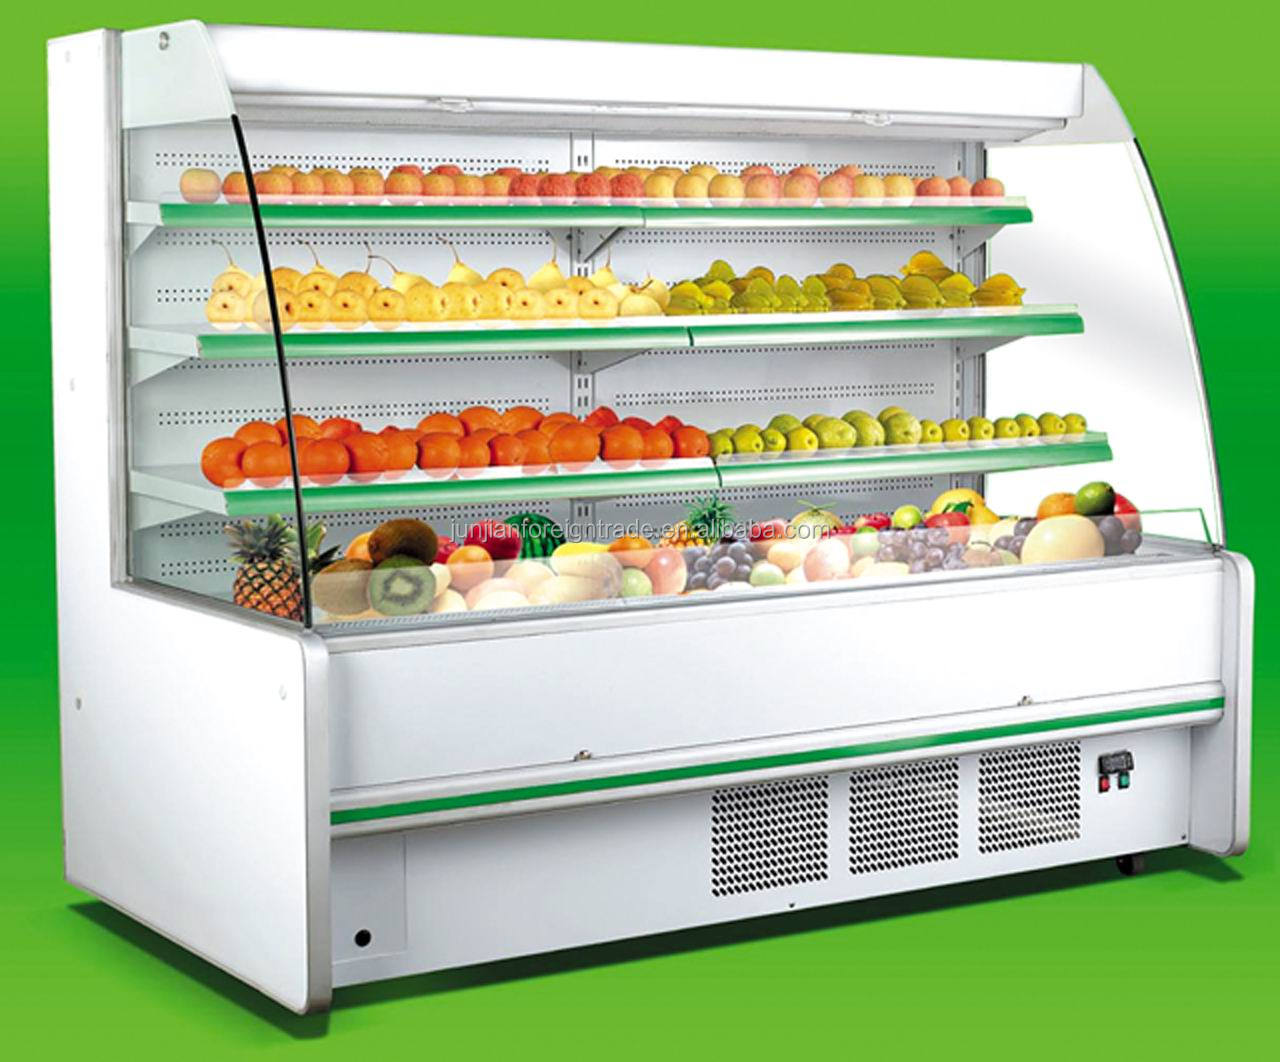 Sbg 20a Supermarket Equipment Commercial Fruit Display Refrigerator